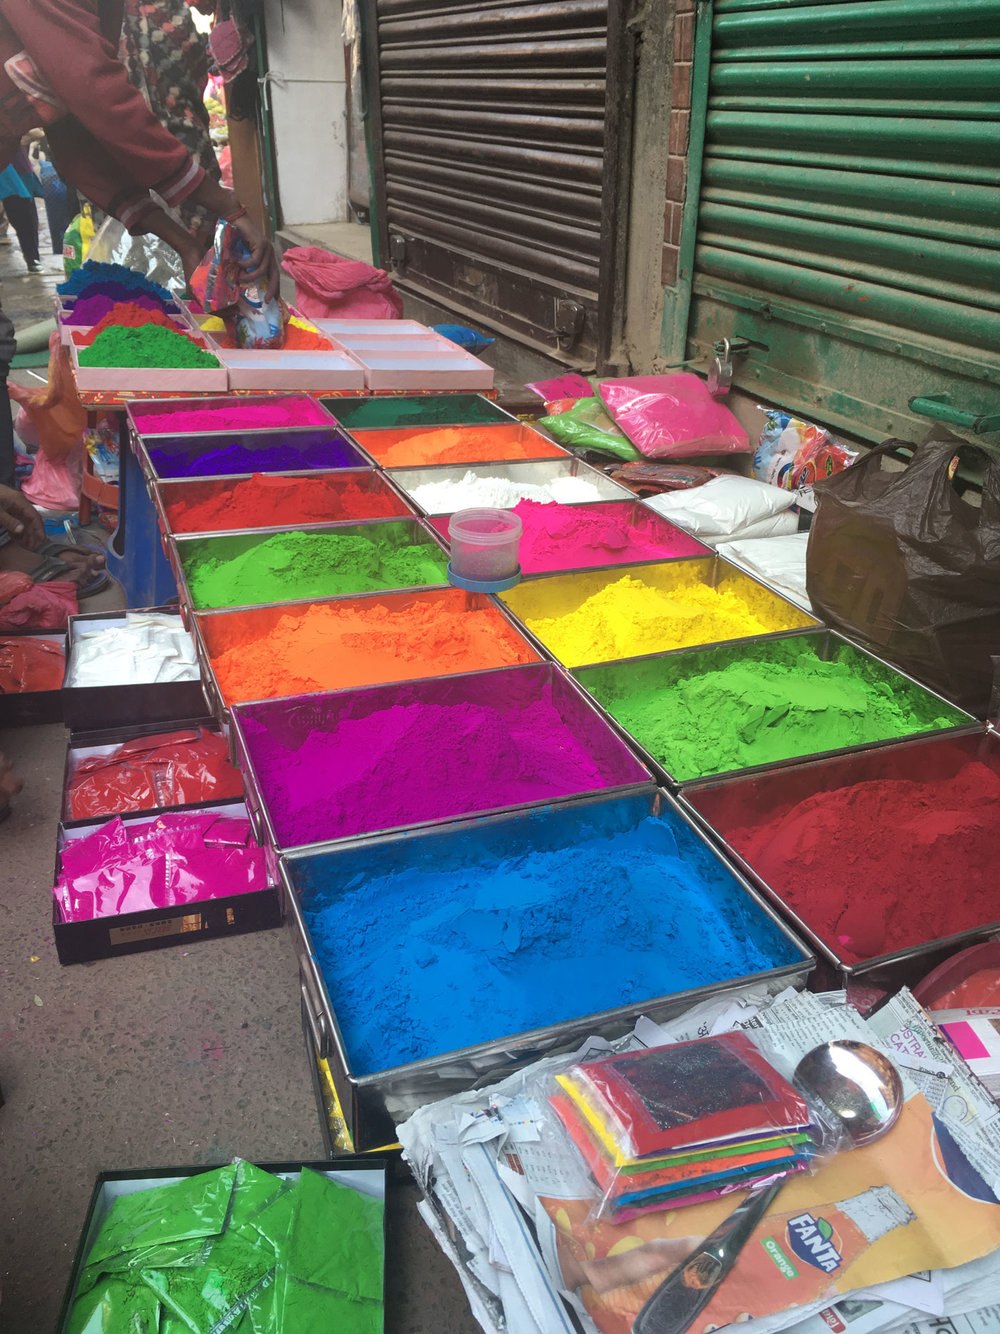 Colourful Diwali preparations.